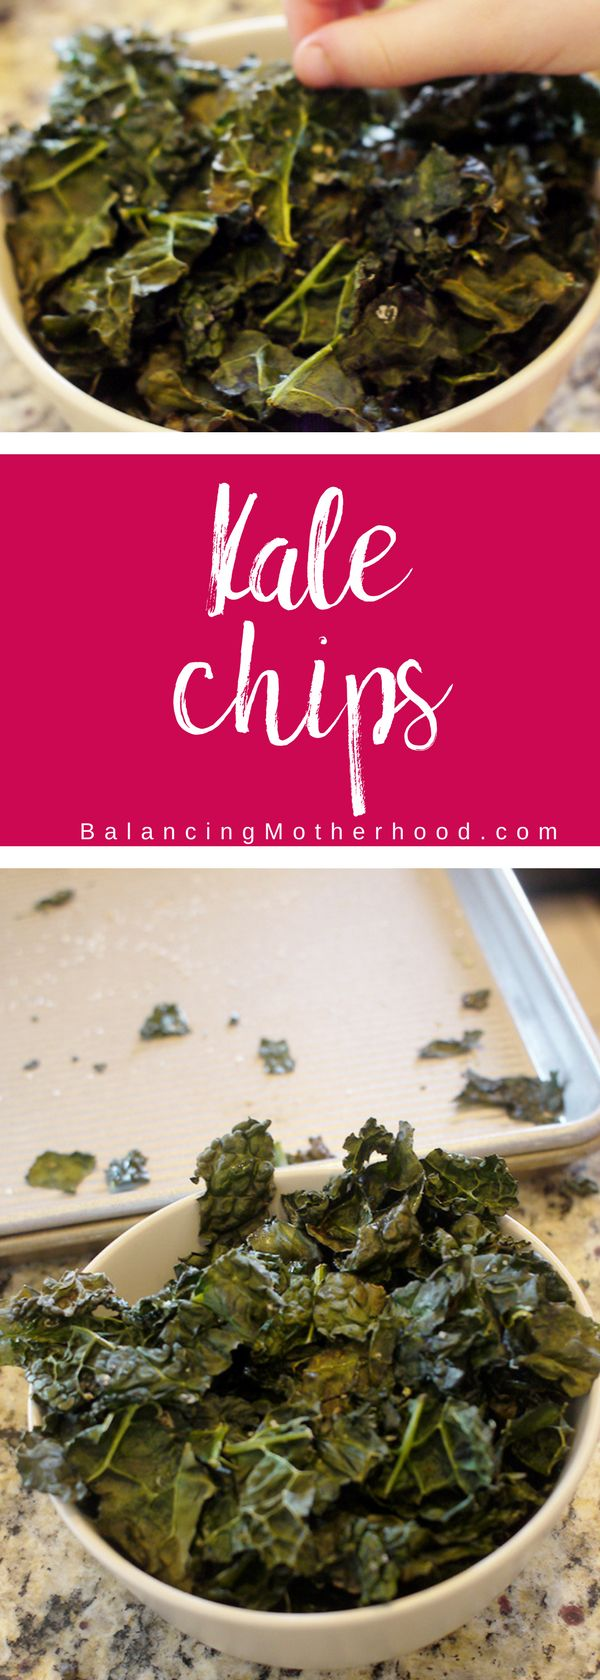 Kale chips are easy to make when you know what to avoid. Kale chips recipe with tips to ensure a perfect batch every time! Get the recipe and try them today.